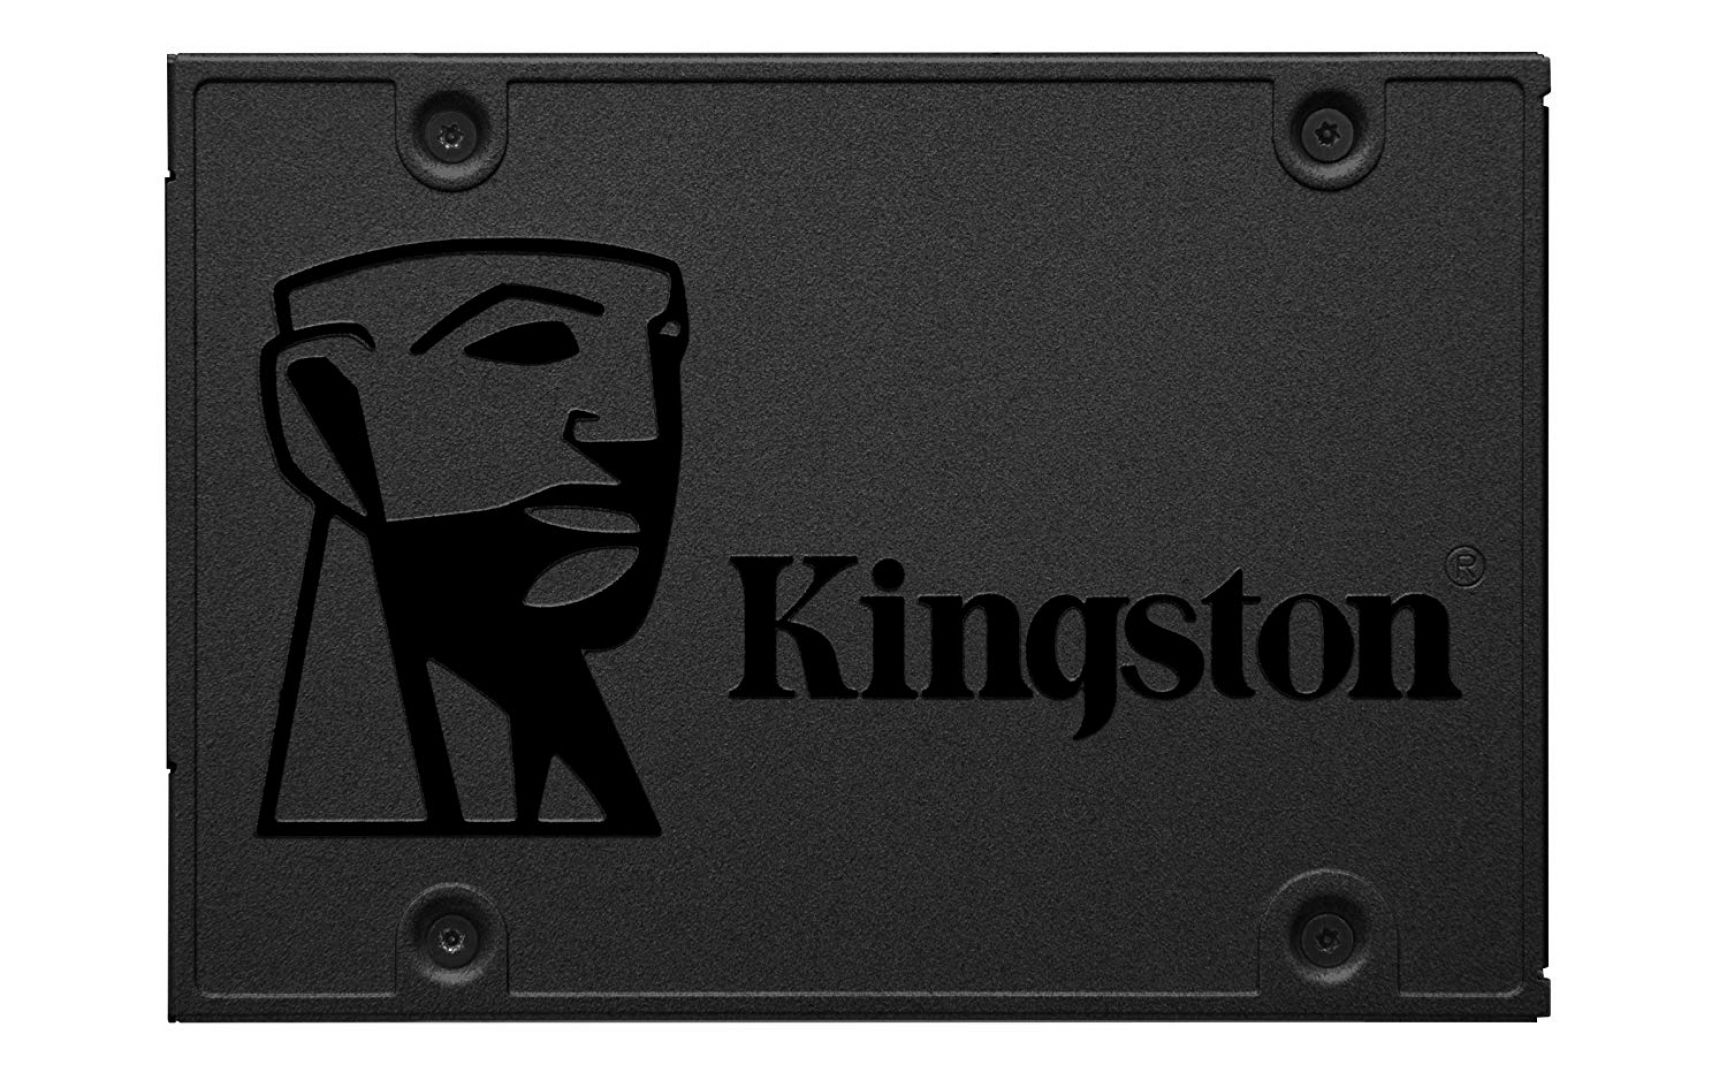 Kingston SA400S37/960G product image.